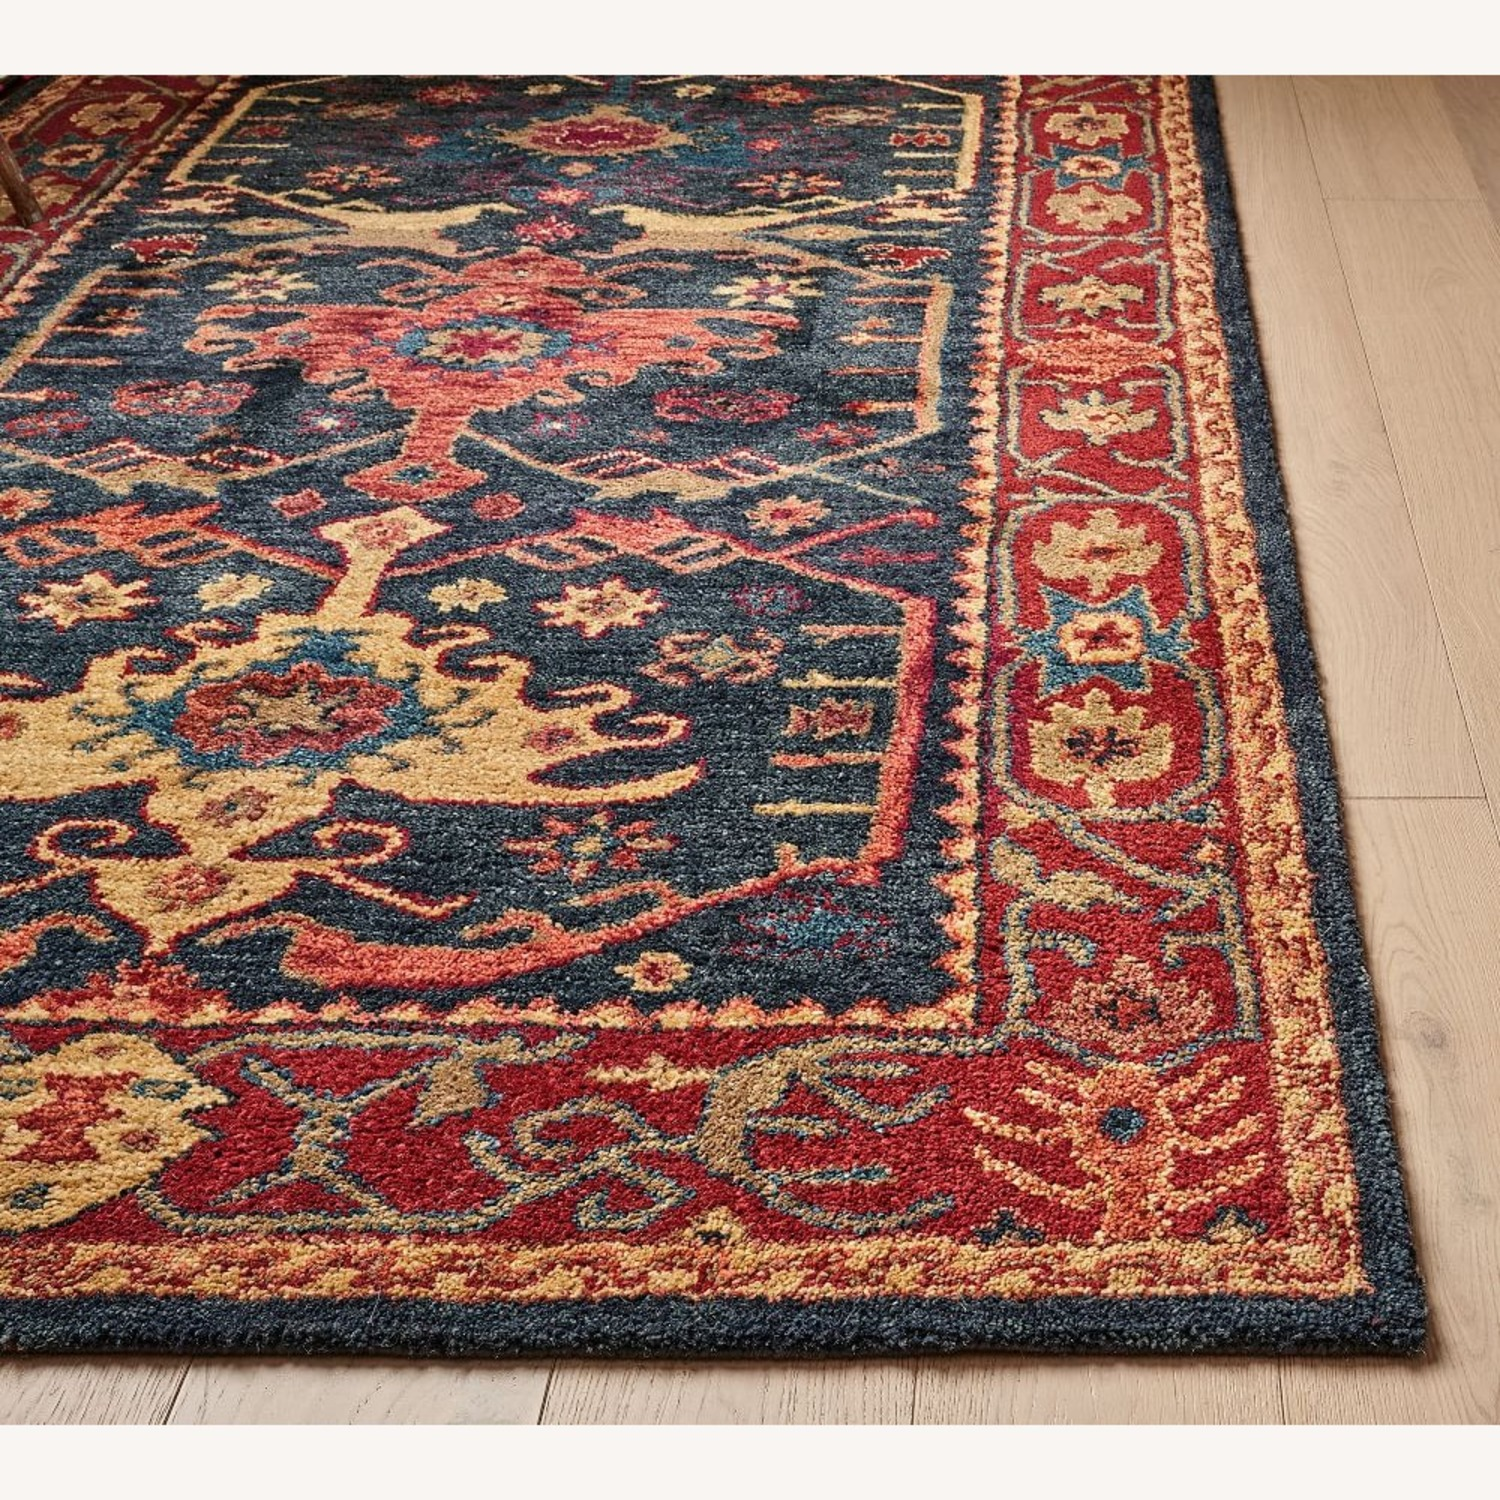 Pottery Barn Channing Persian-Style Hand Rug - image-1